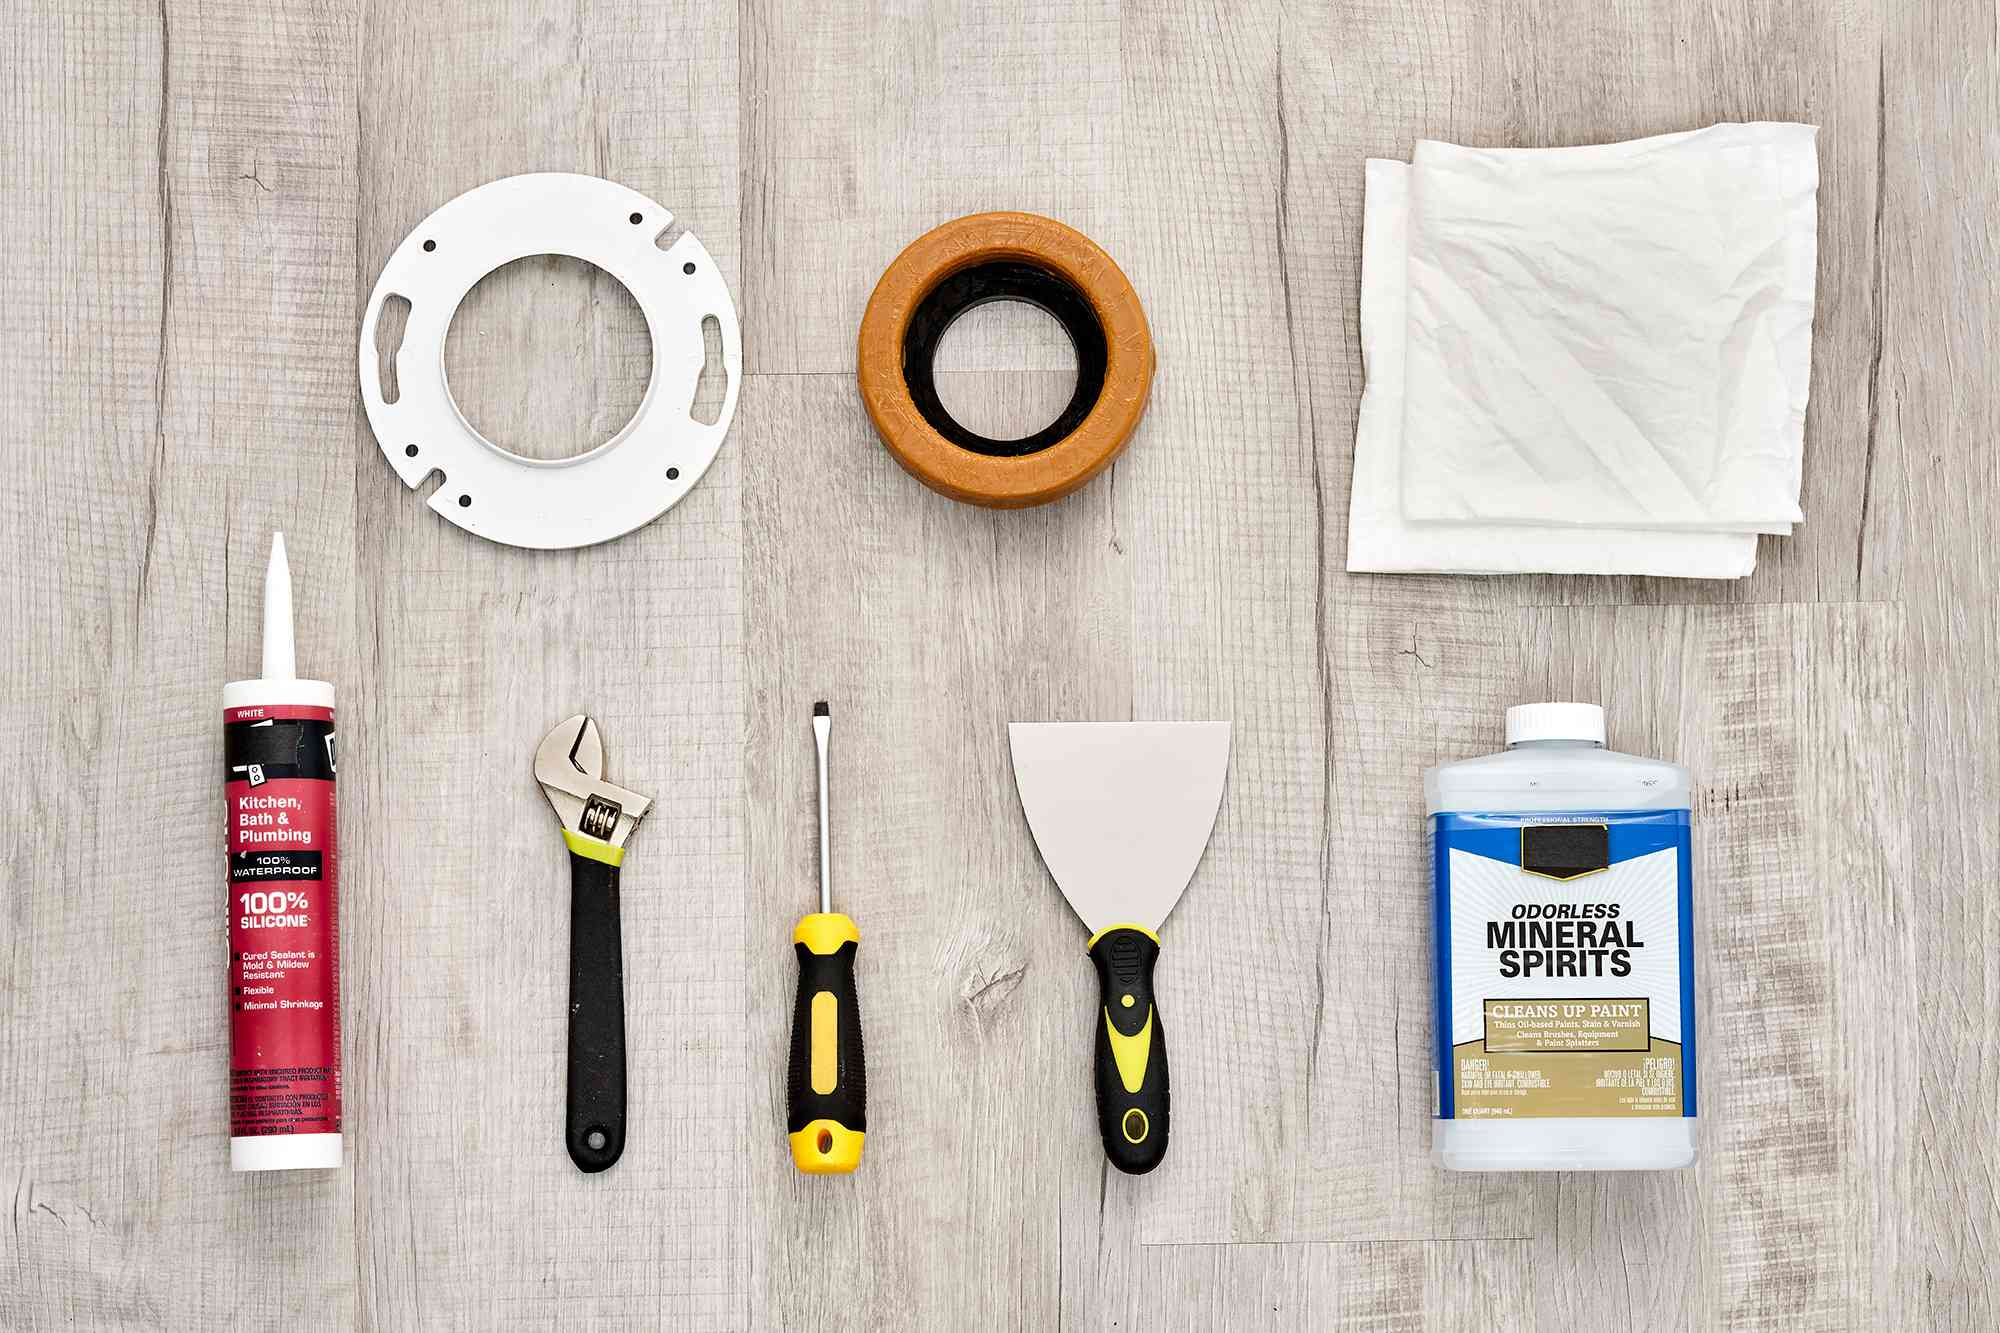 Materials and tools to install a toilet flange extender